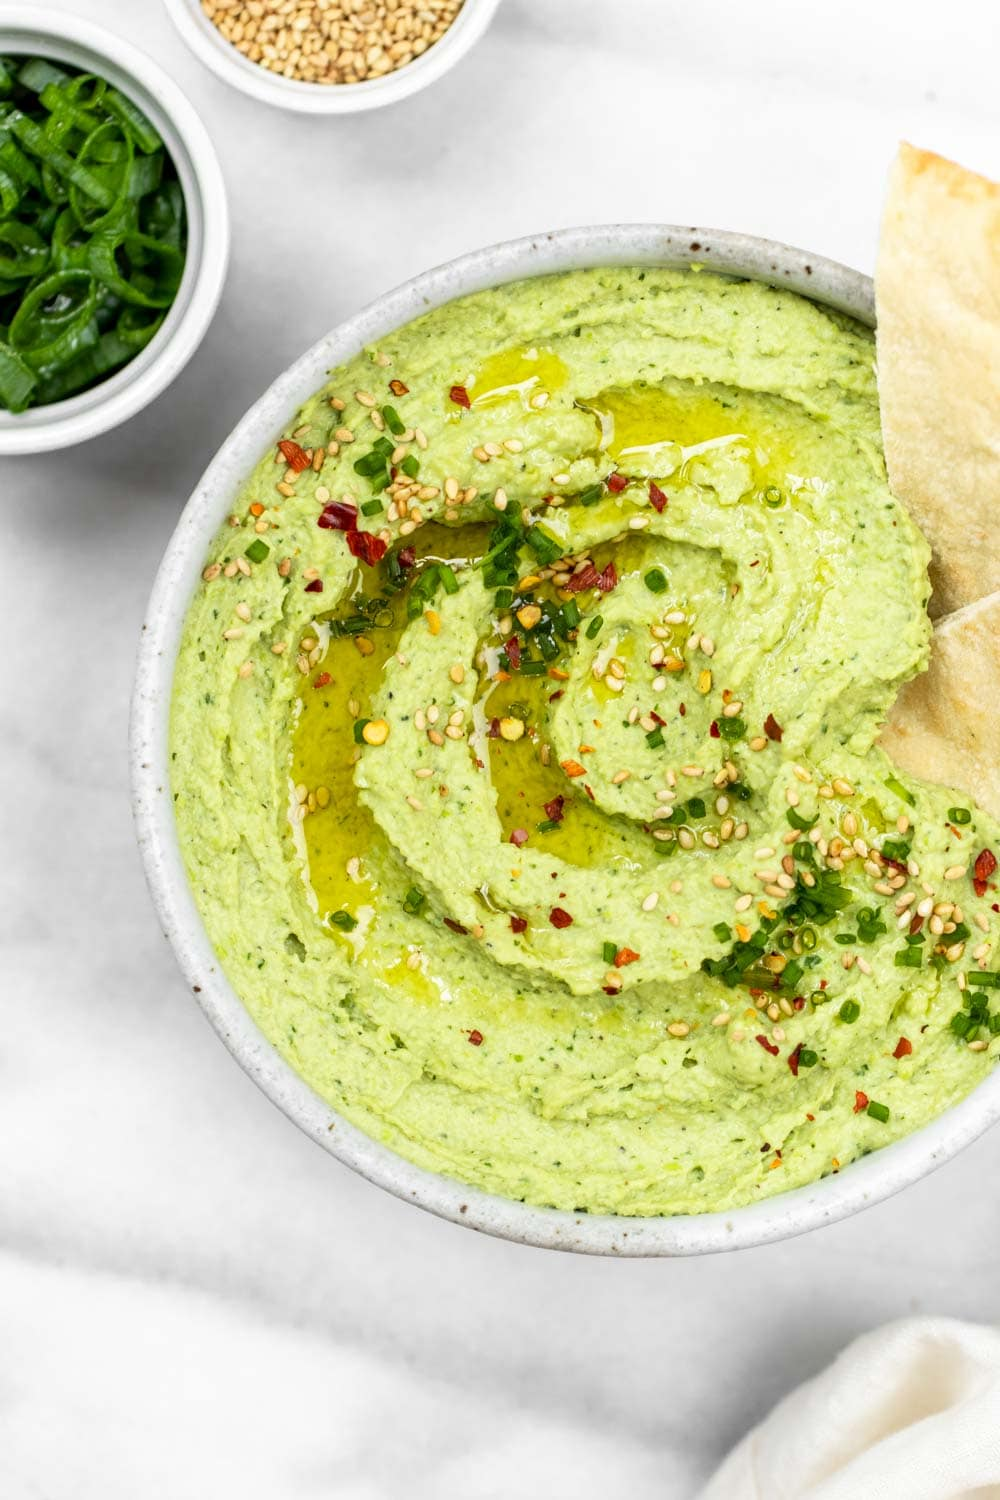 Close up image of the avocado and edamame hummus with sesame seeds on top.